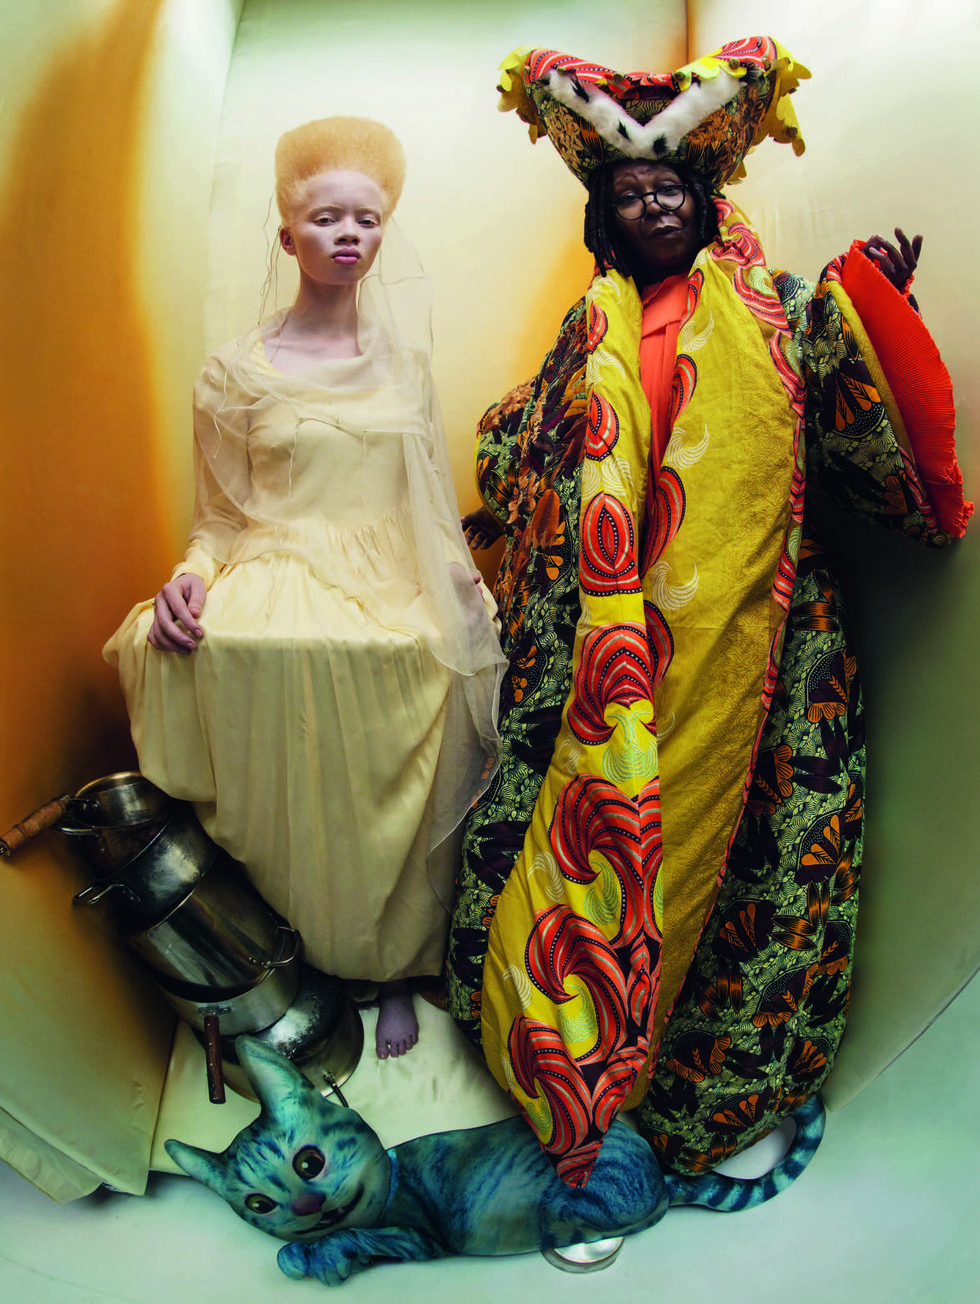 Thando Hopa 'The Queen of Hearts' and Whoopi Goldberg 'The Royal Duchess'' by Tim Walker for the all-black 'The Pirelli Calendar' 2018